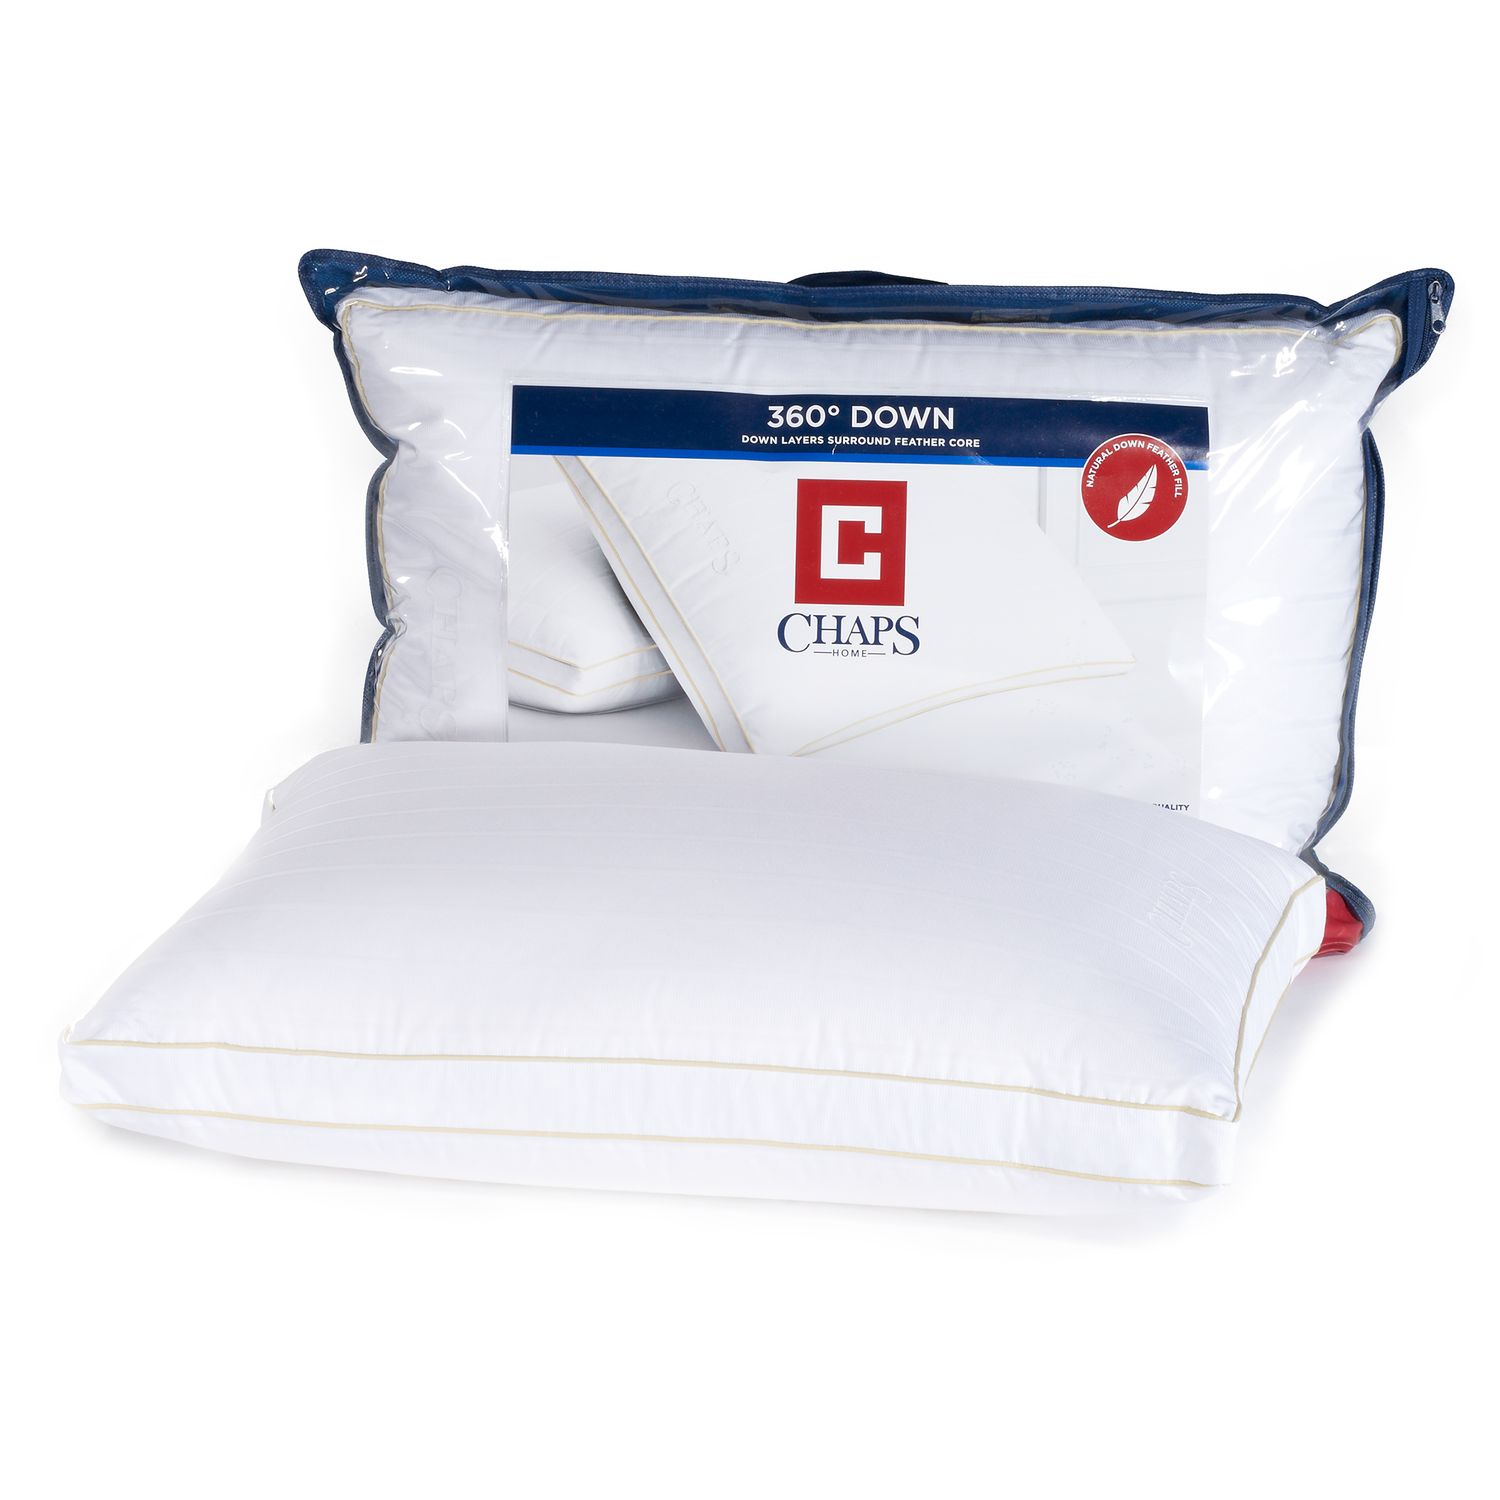 pacific coast pillows bed bath beyond side sleeper bed pillows pillows bed u0026 bath kohl u0027s